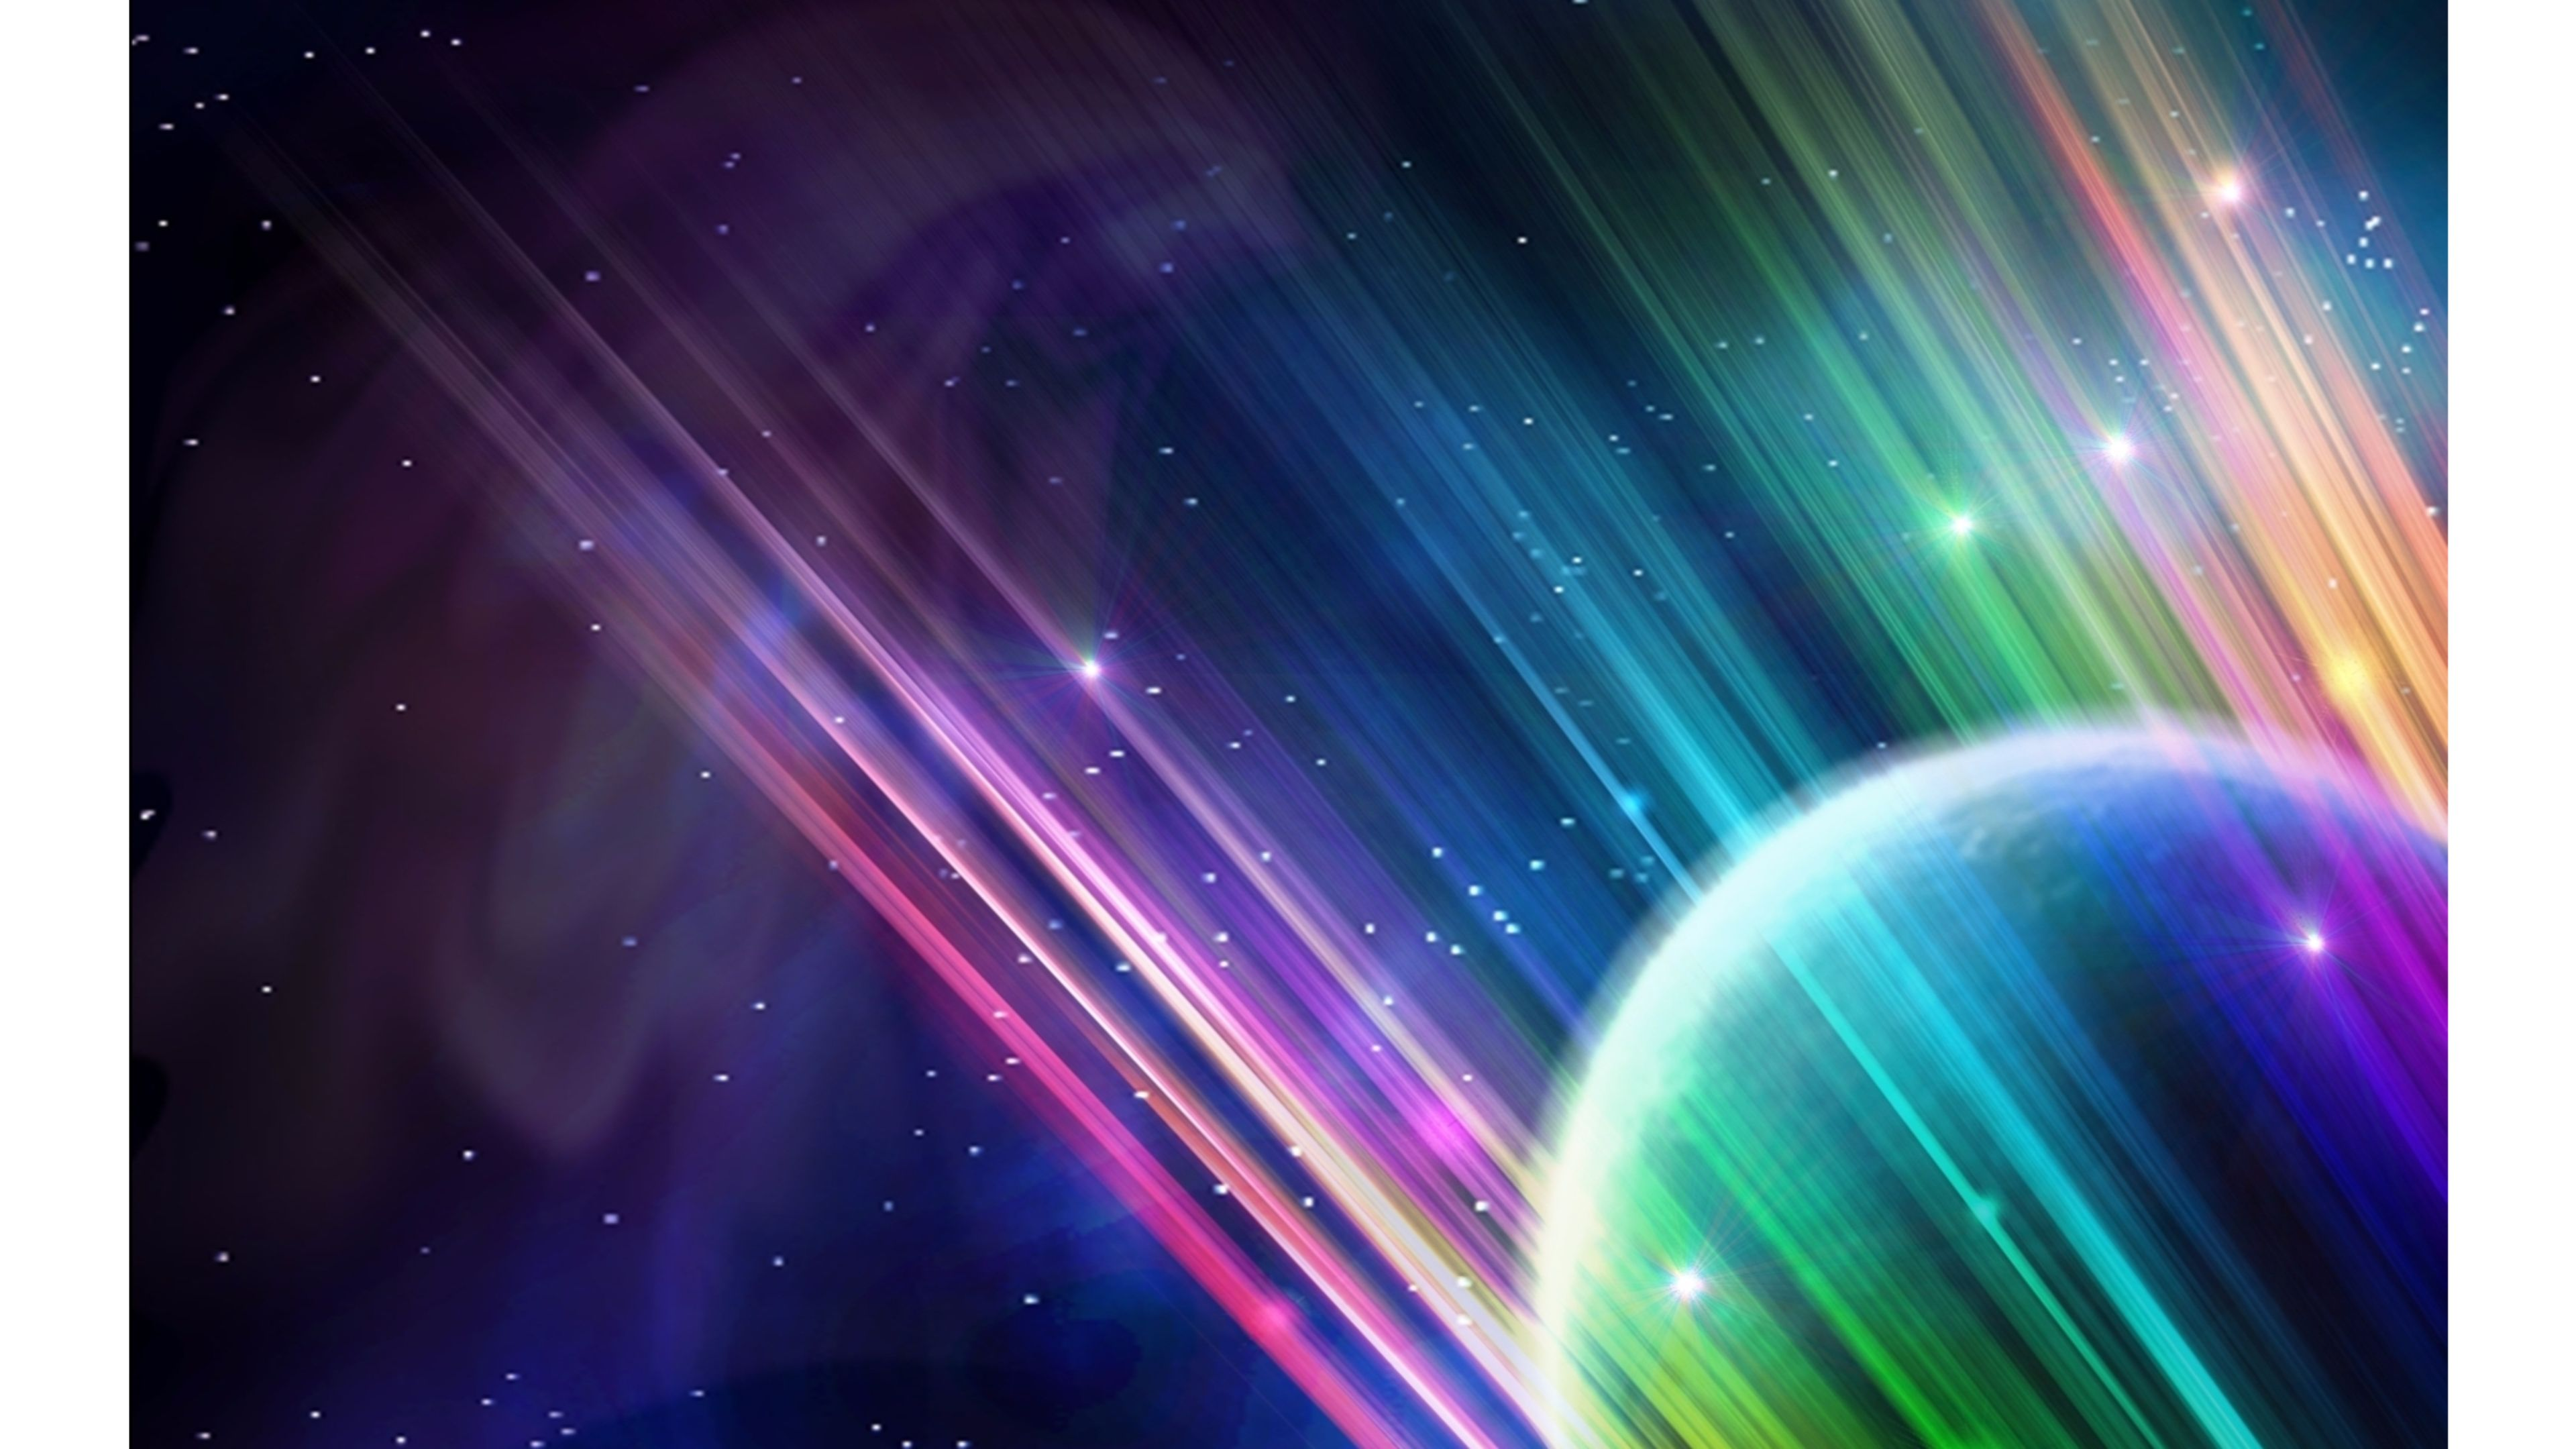 Outer space 4k wallpapers top free outer space 4k - Abstract space wallpaper ...